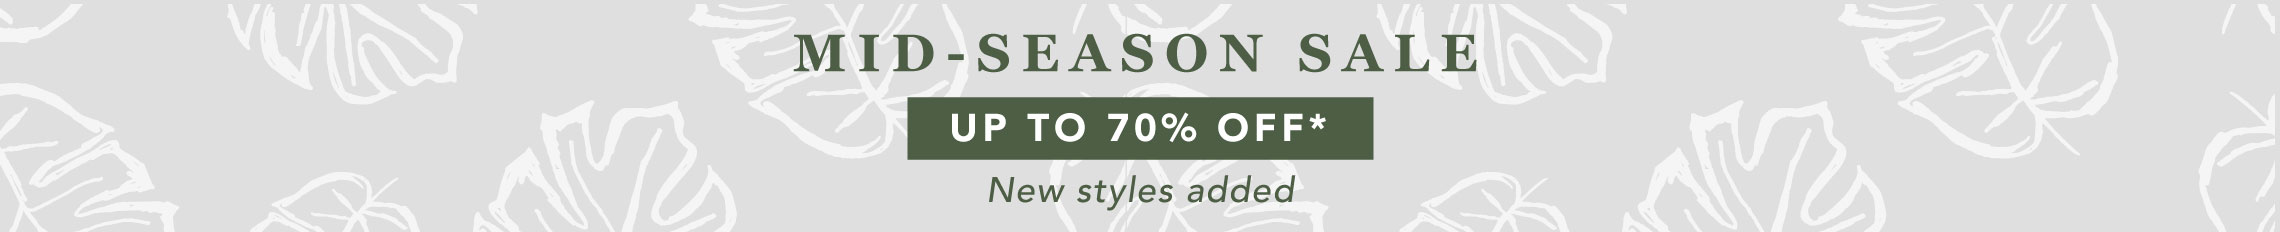 Up to 70% off, new styles added